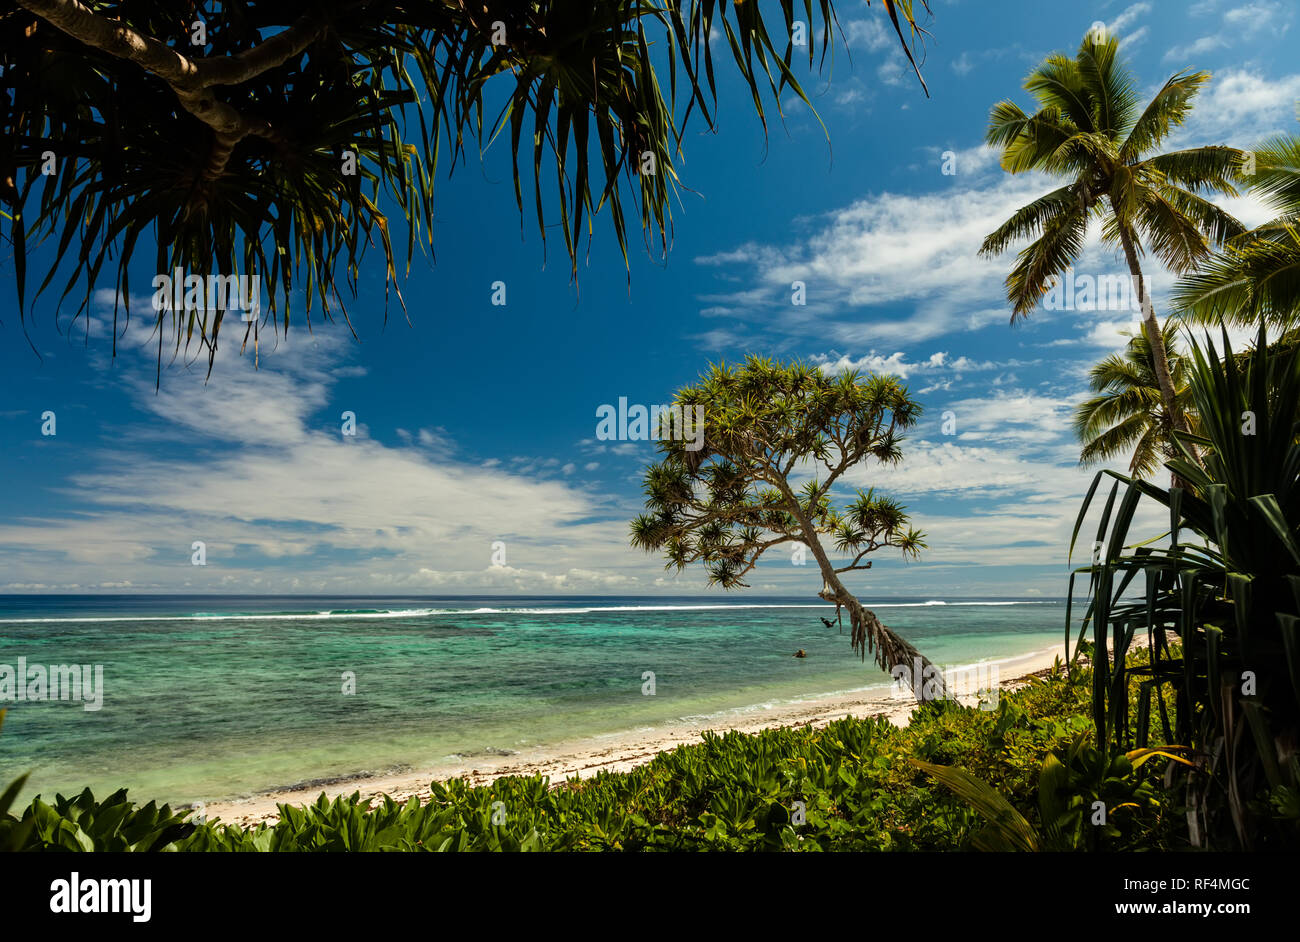 Beach with palm trees on the Kingdom of Tonga, south pacific island. - Stock Image